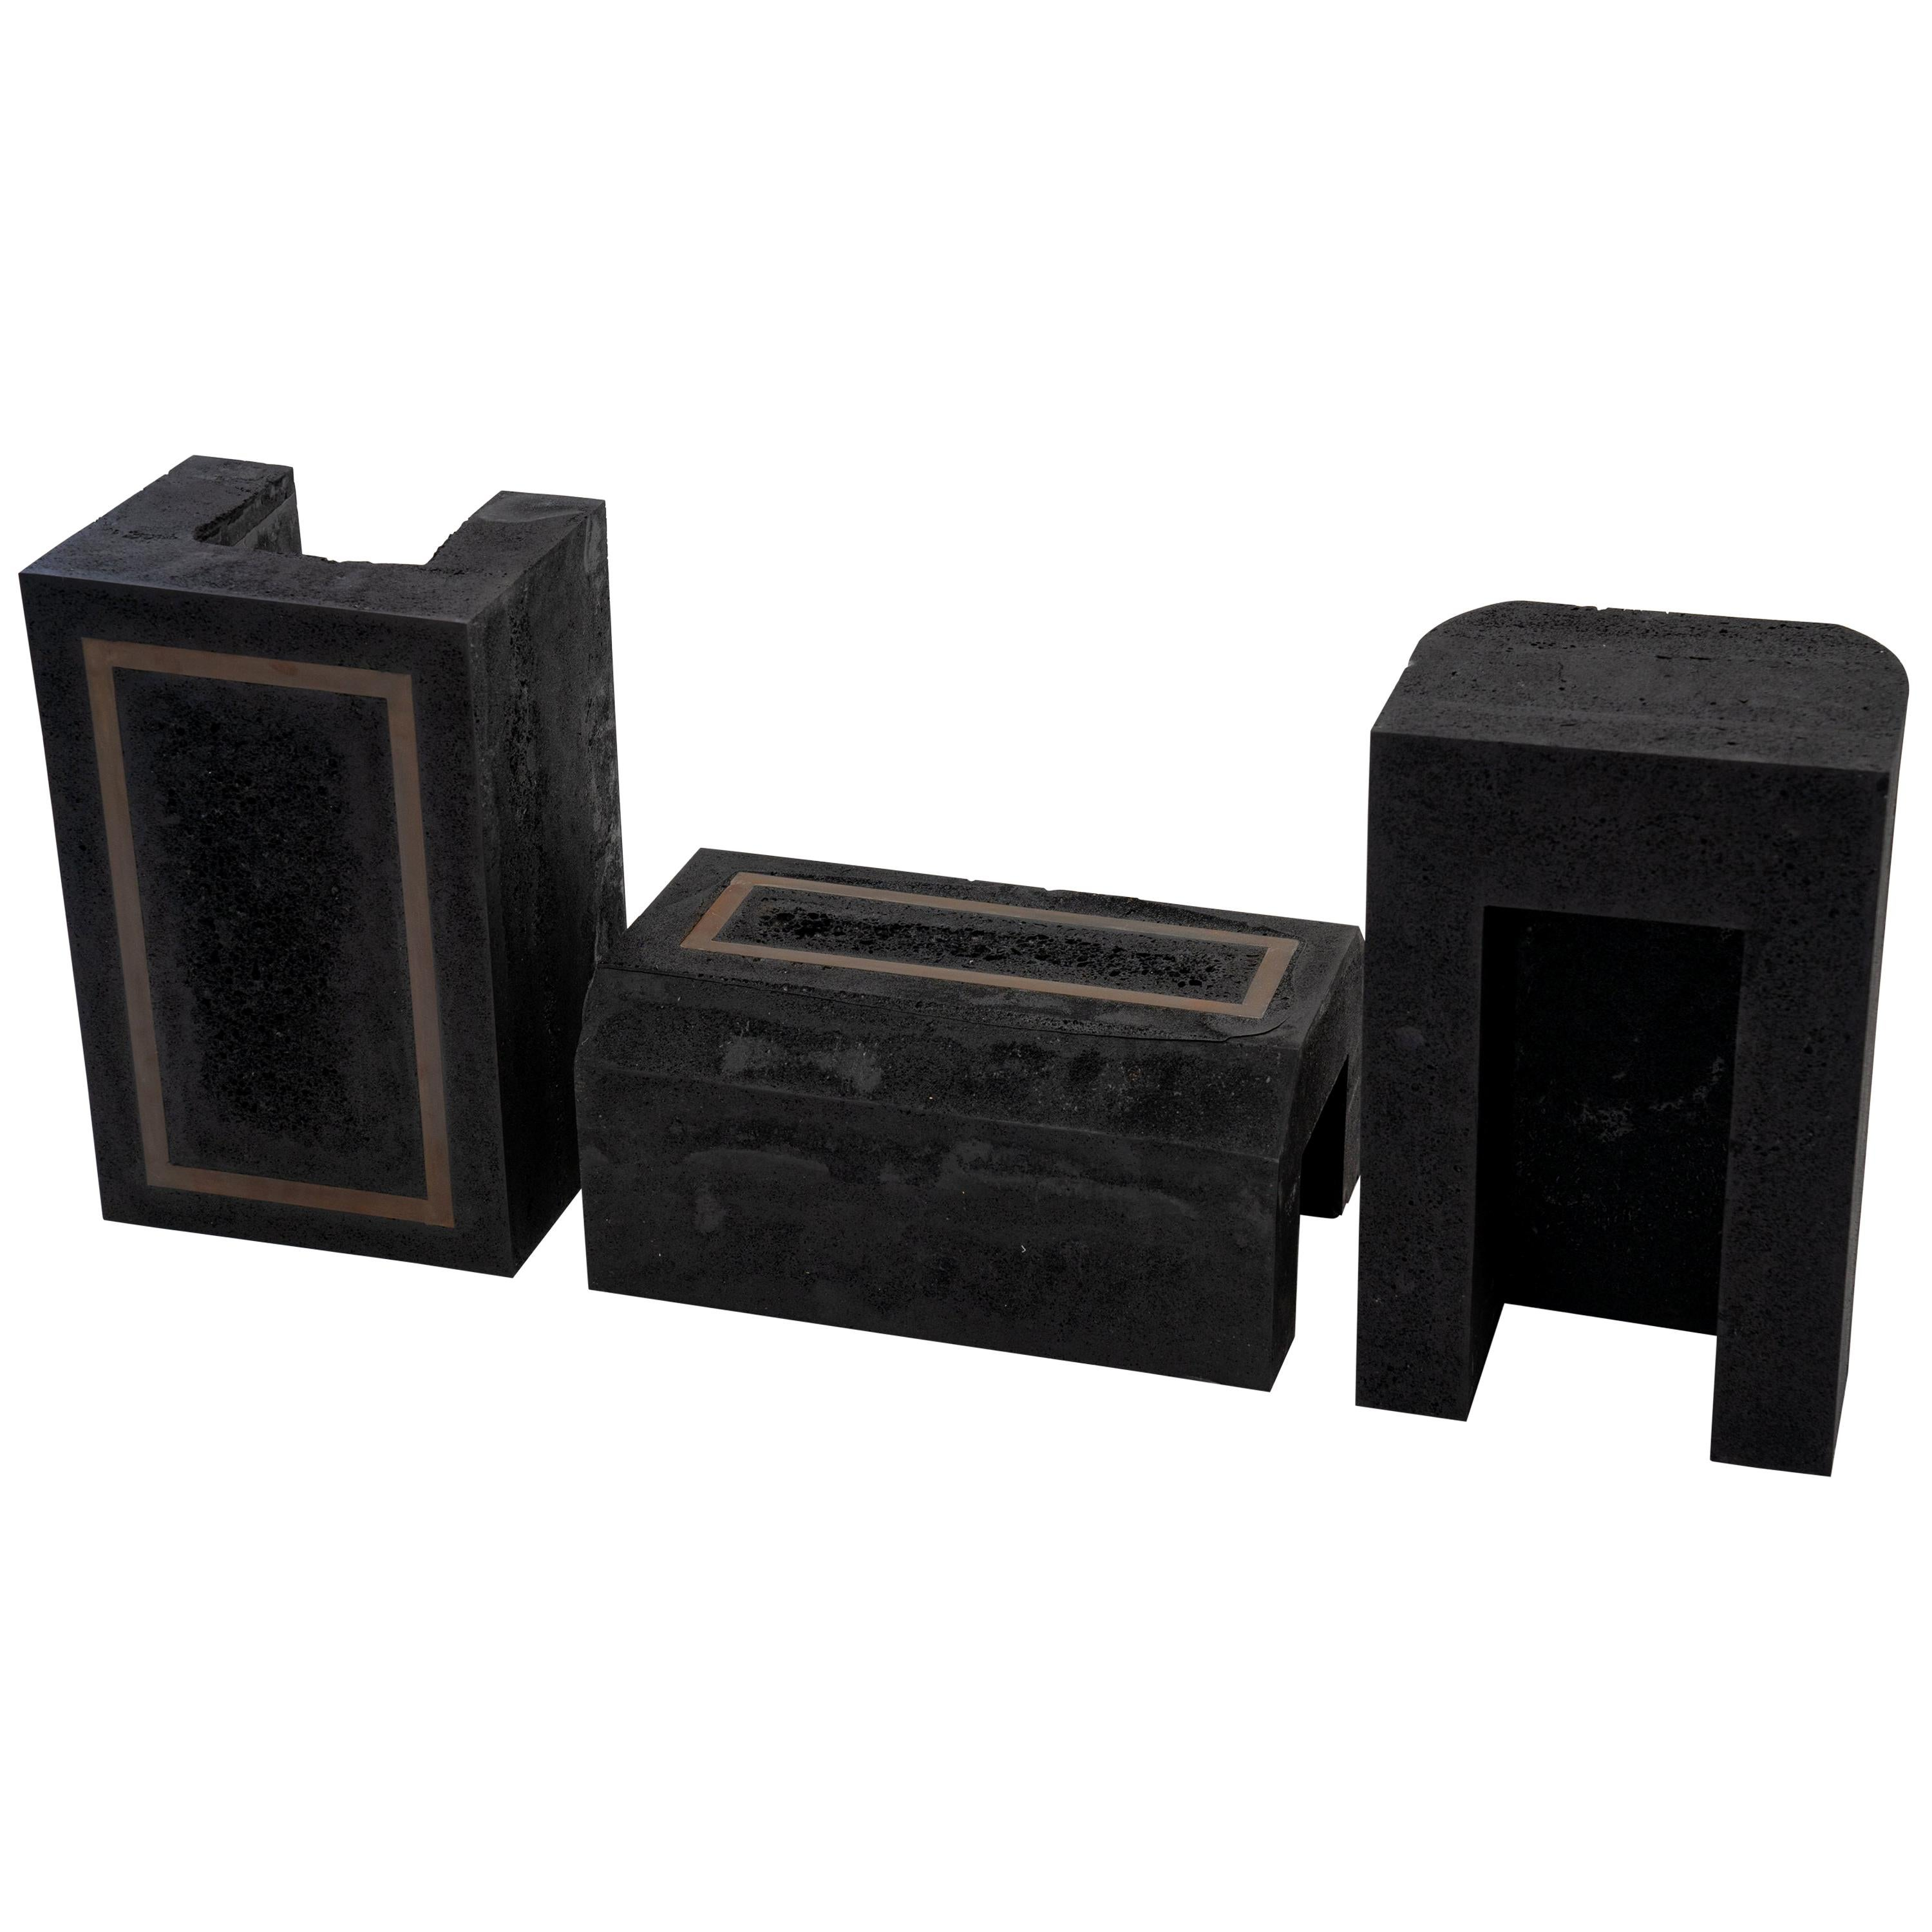 Set of 3 Modern Side Tables Contemporary Handmade, Graphite, Resin, Steel Inlay